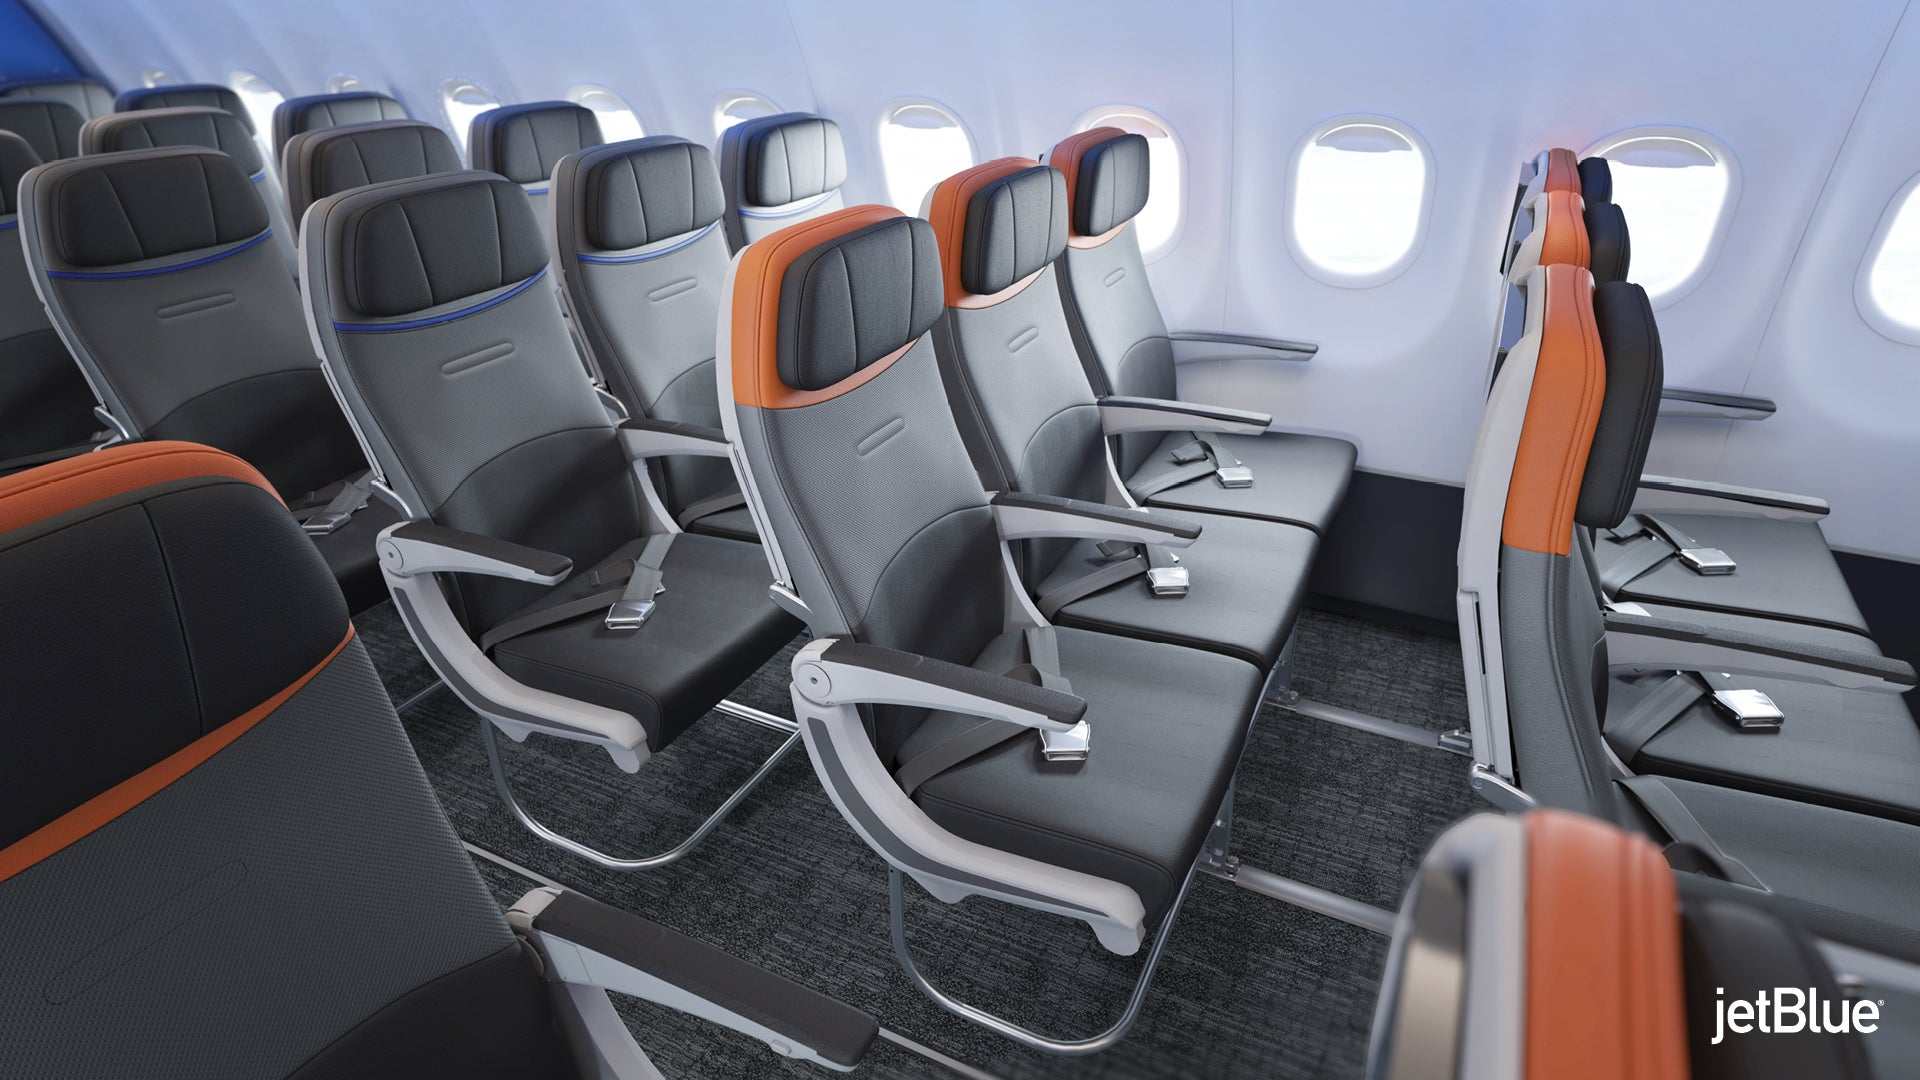 JetBlue Is Finally Ready to Refurbish Its Airbus A320 Fleet -- The